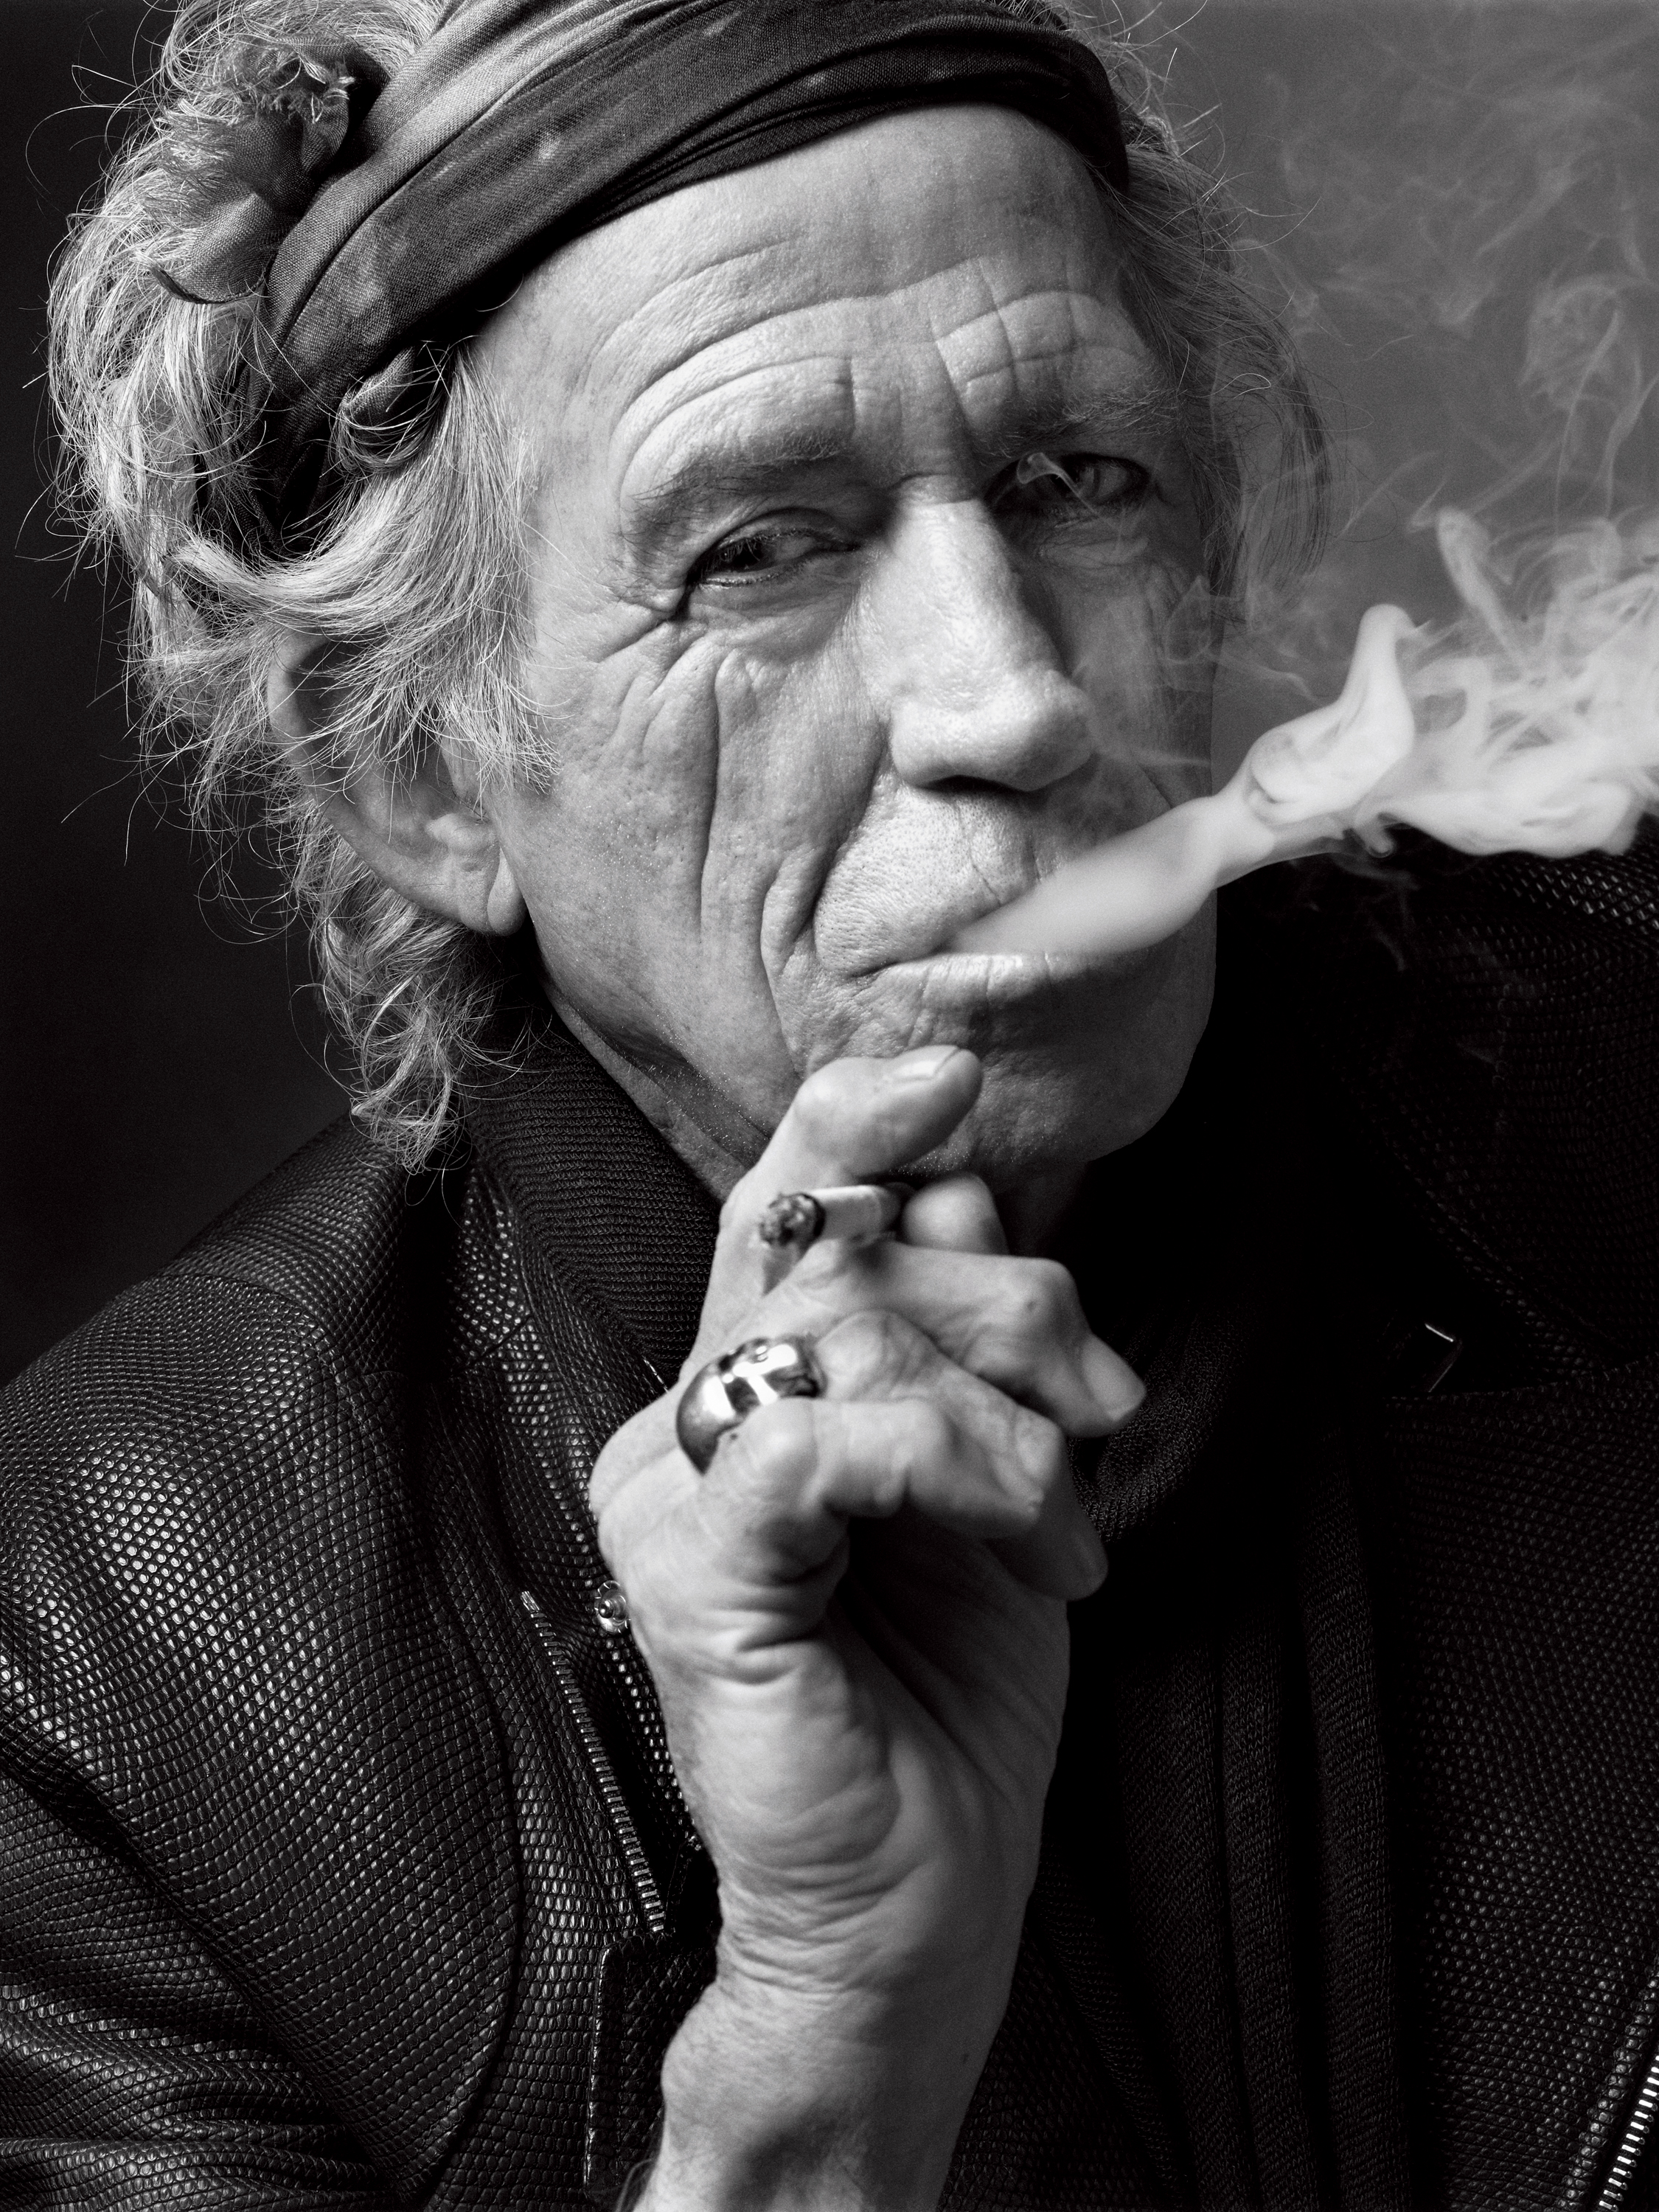 Keith Richards, New York, NY, 2011 photograph by Mark Seliger